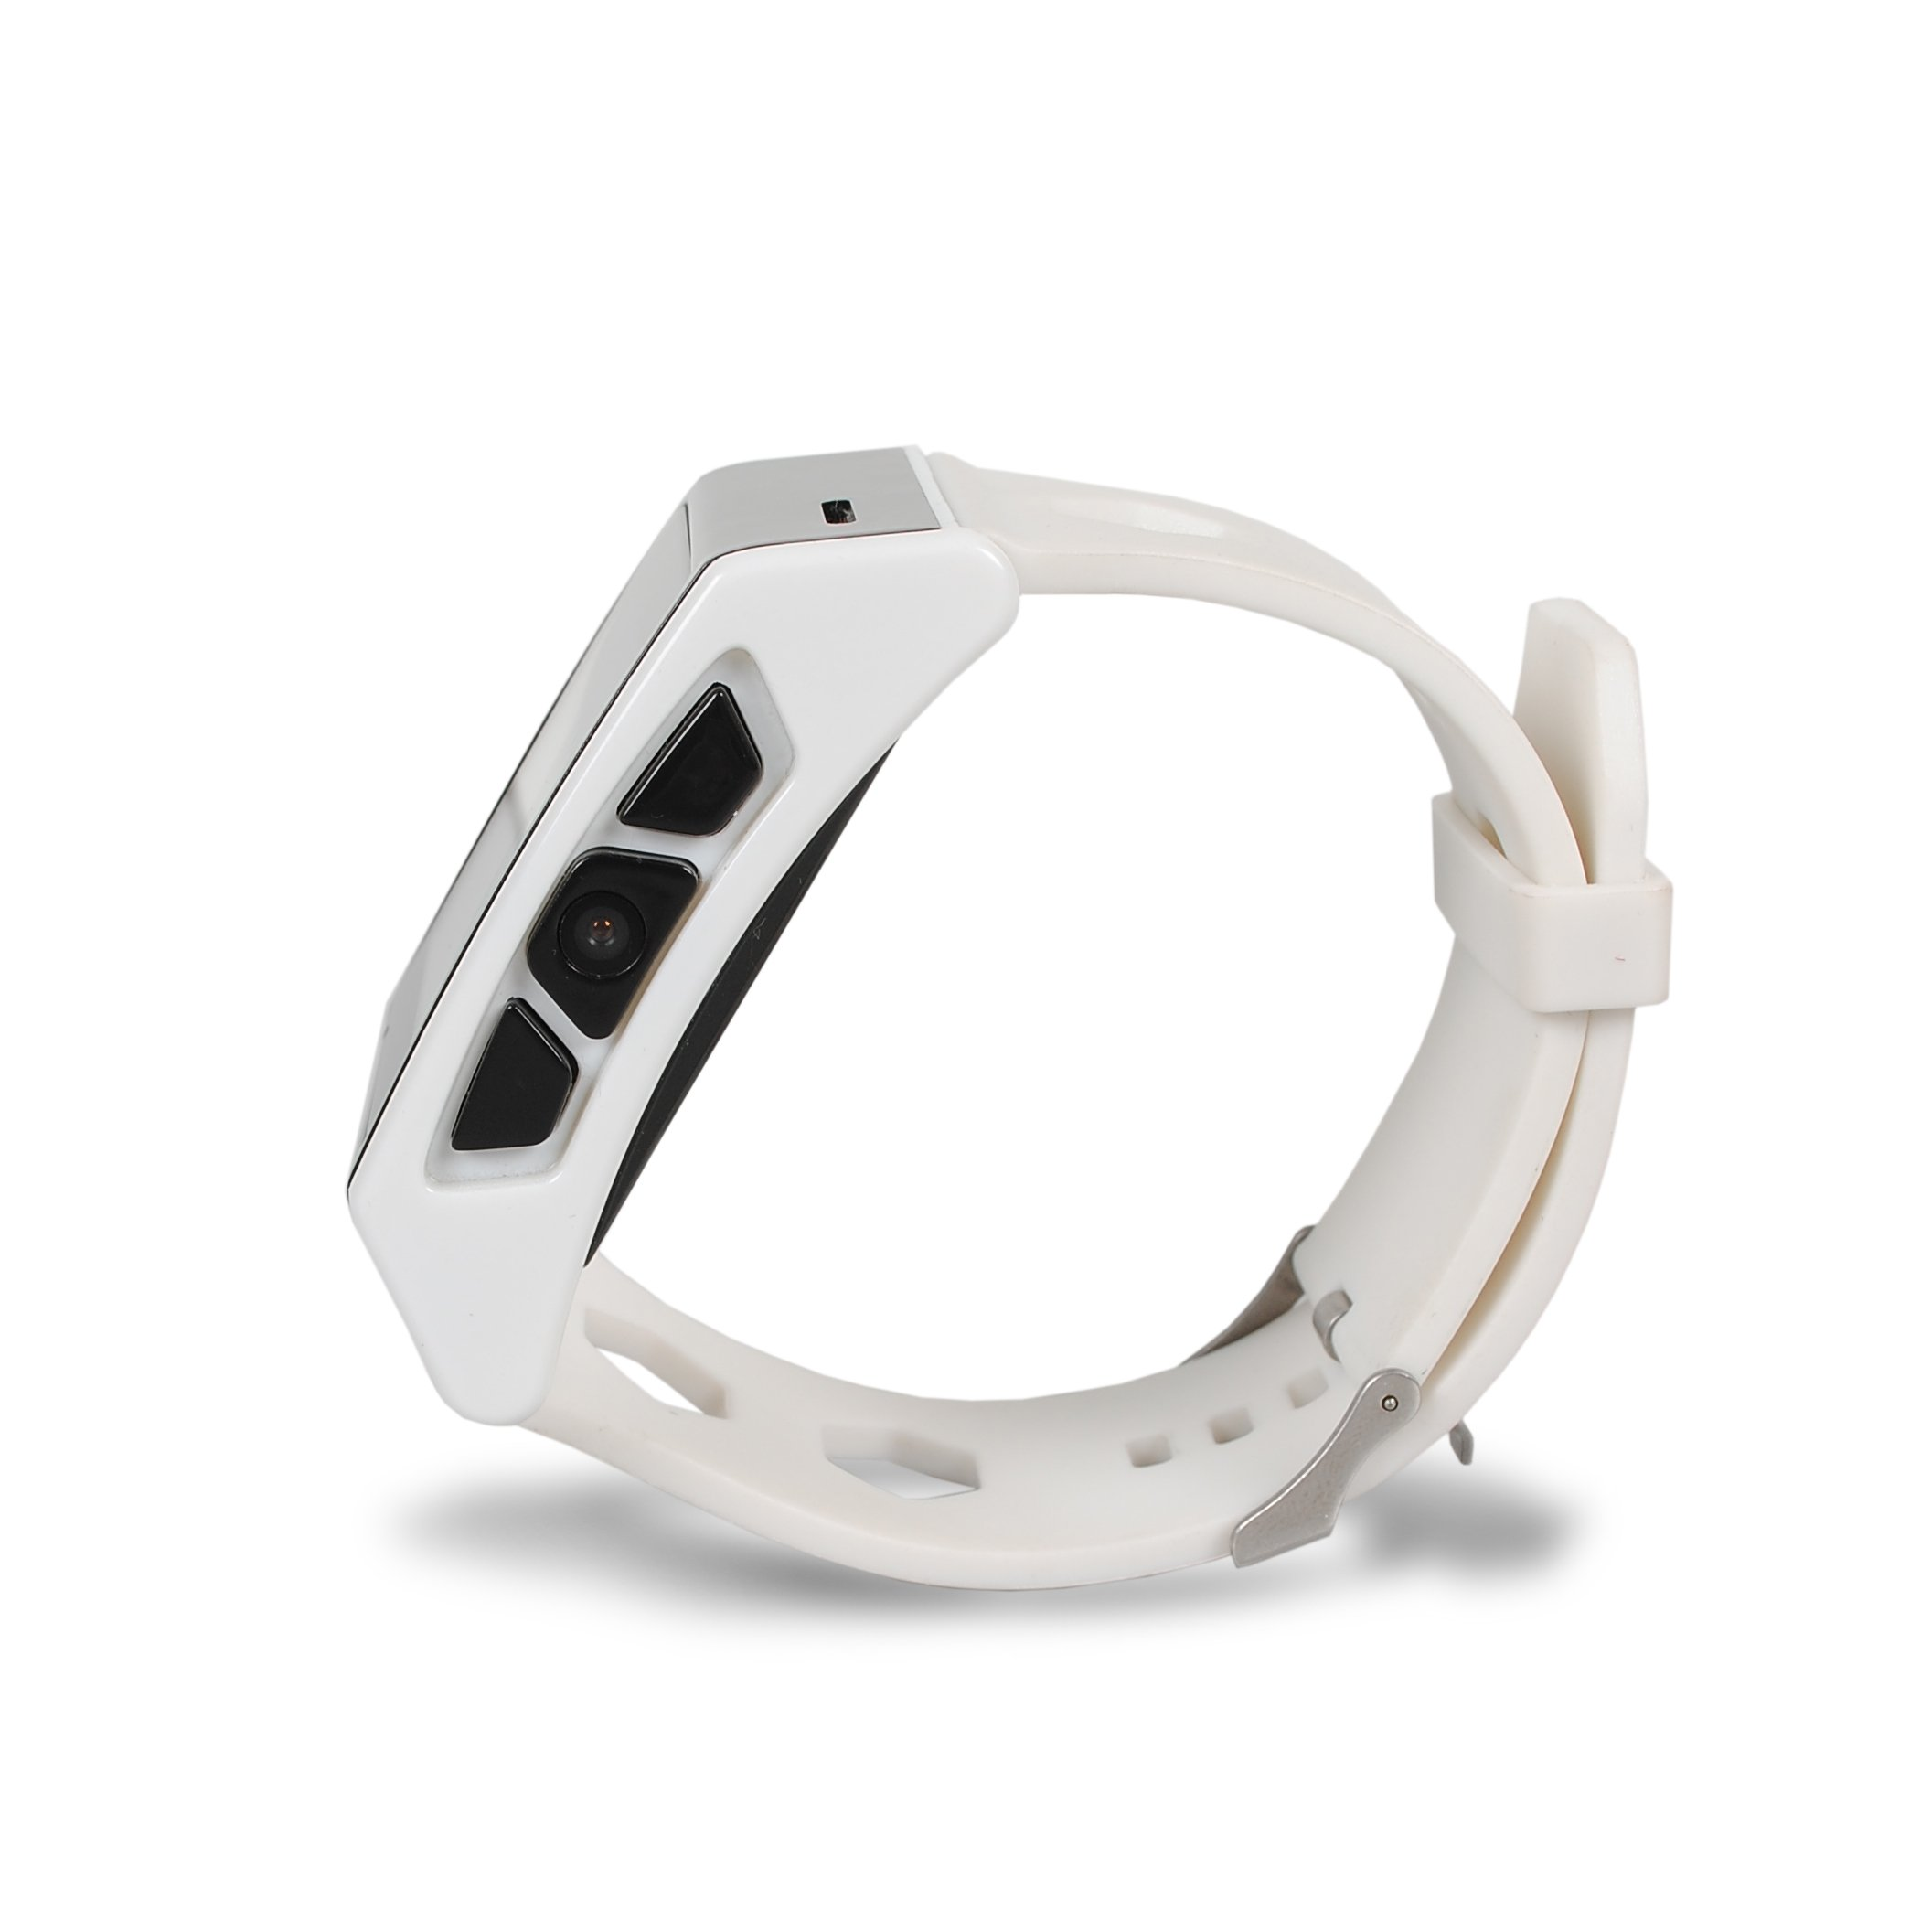 EXETECH Smart Watch-Phone Android - Retail Packaging - White/Black